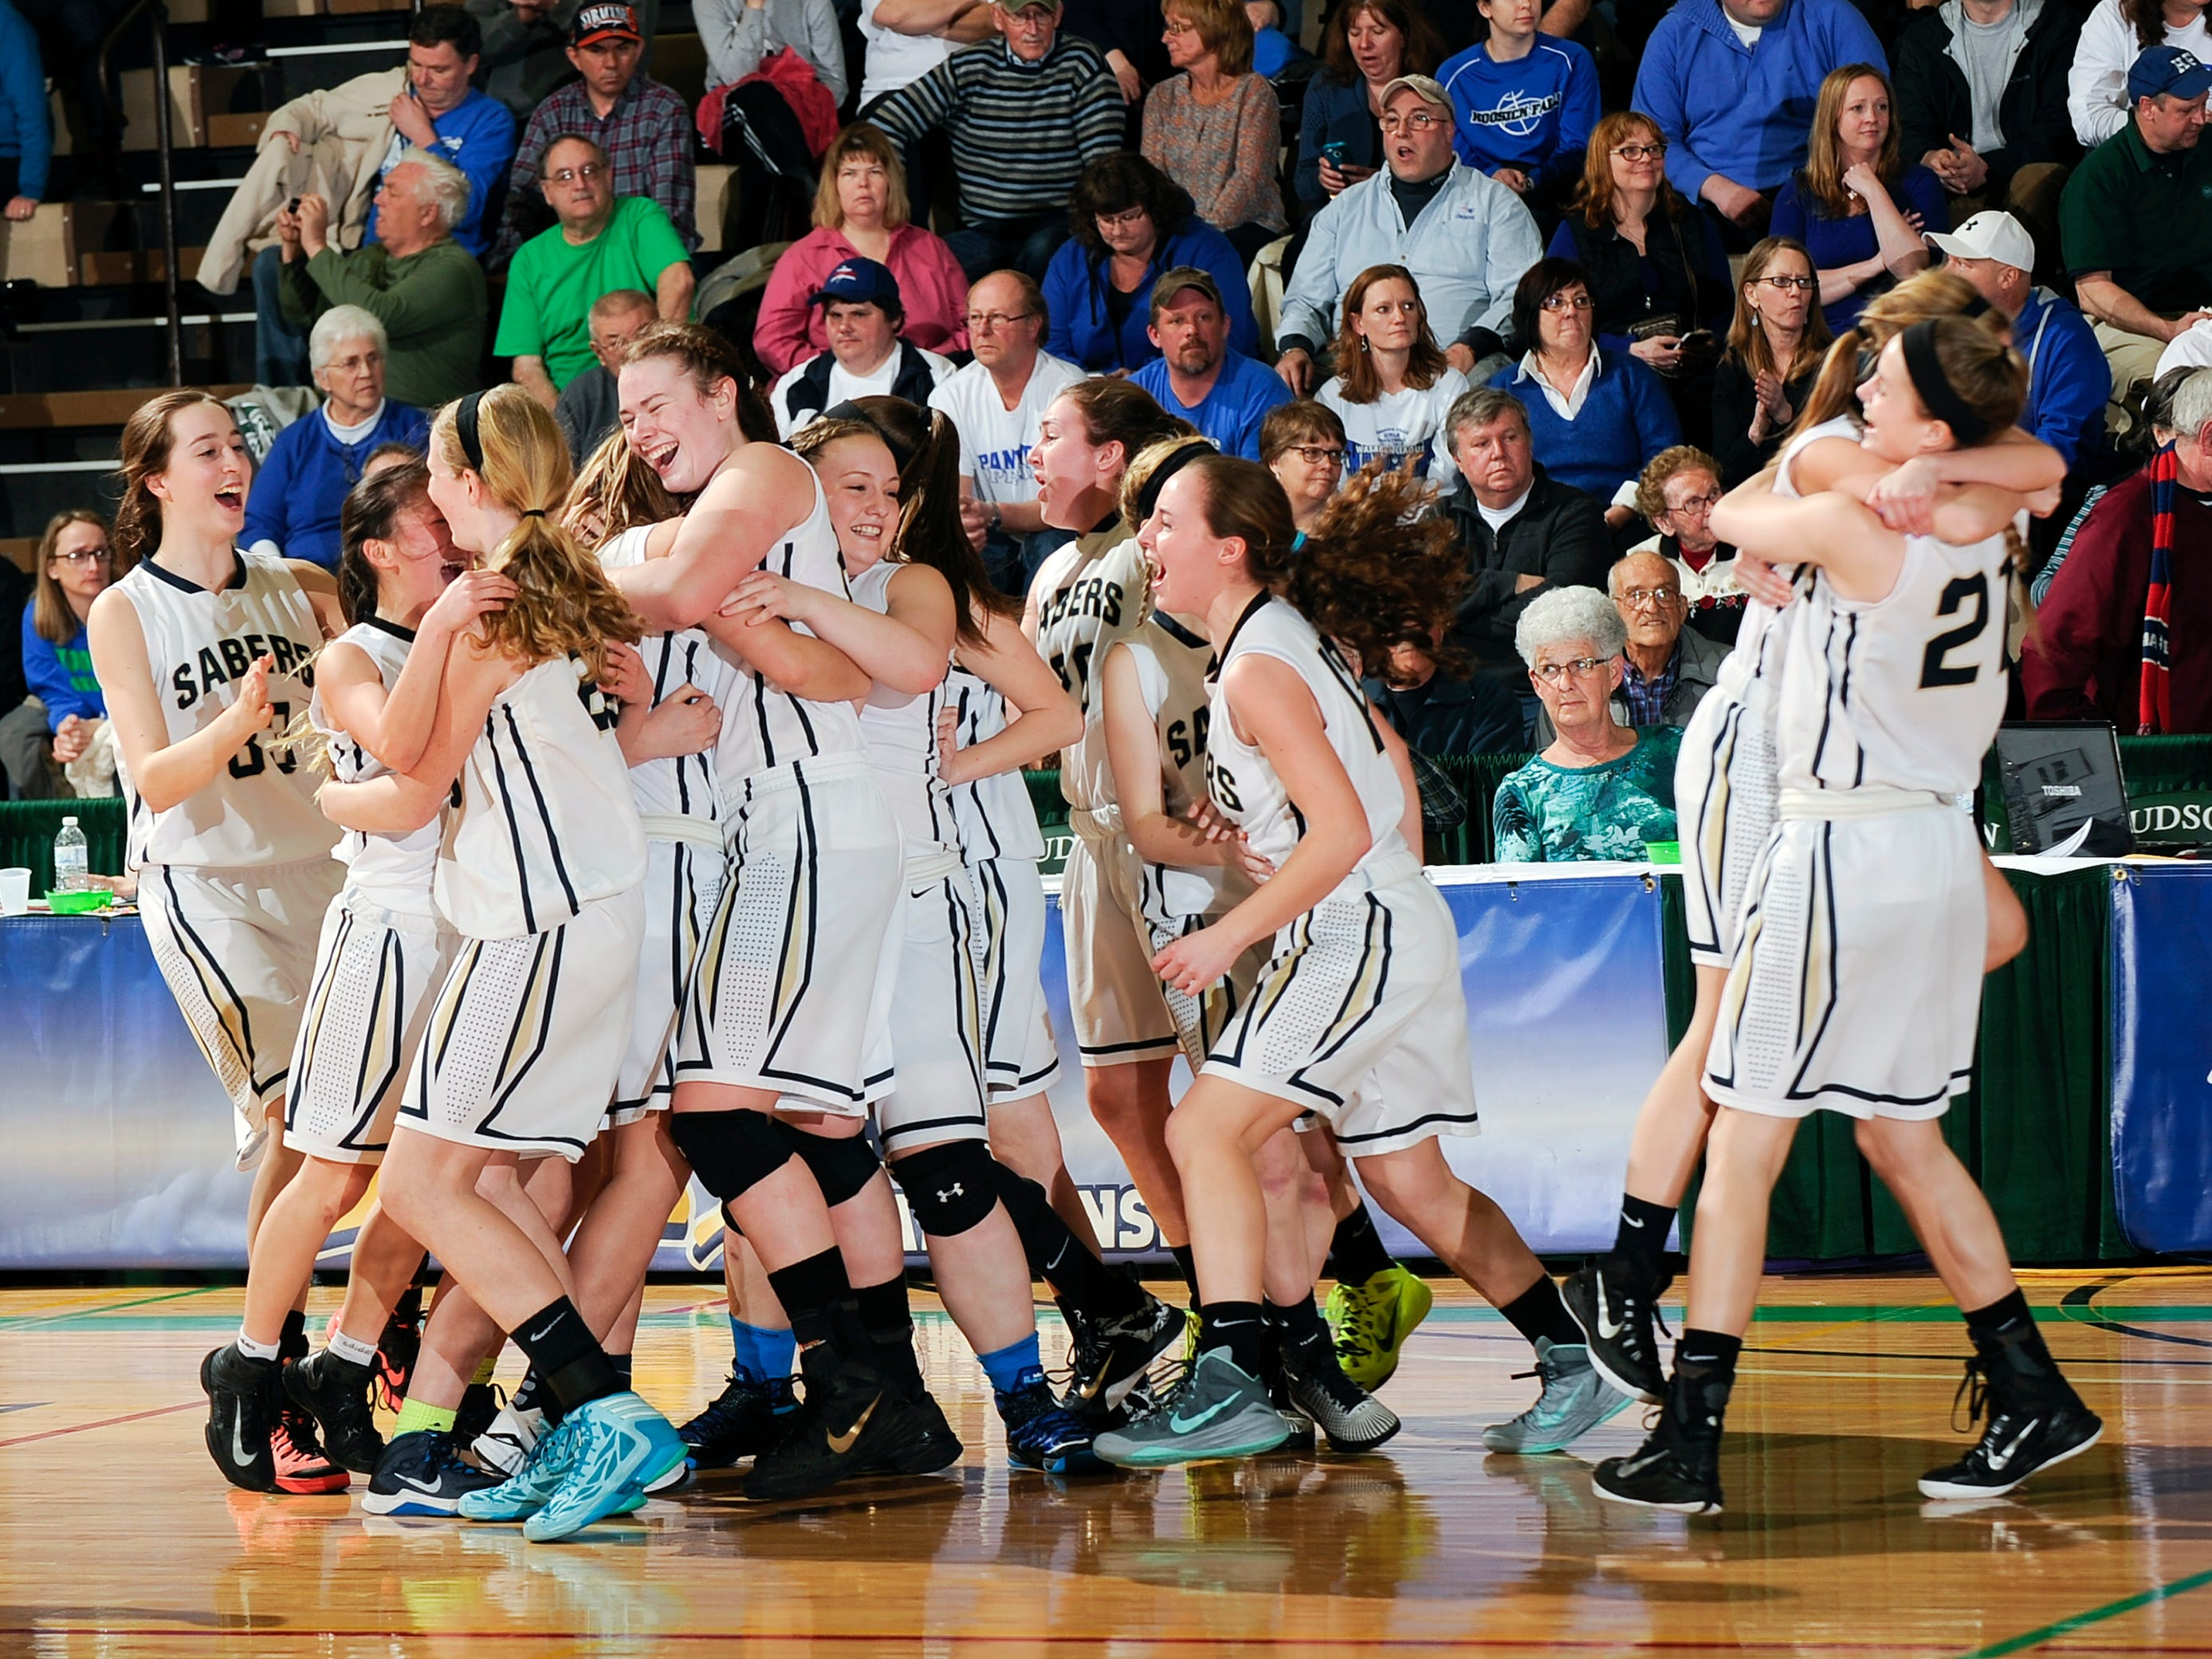 The Susquehanna Valley girls basketball team celebrates winning the Class B state title after a 51-45 victory Saturday.